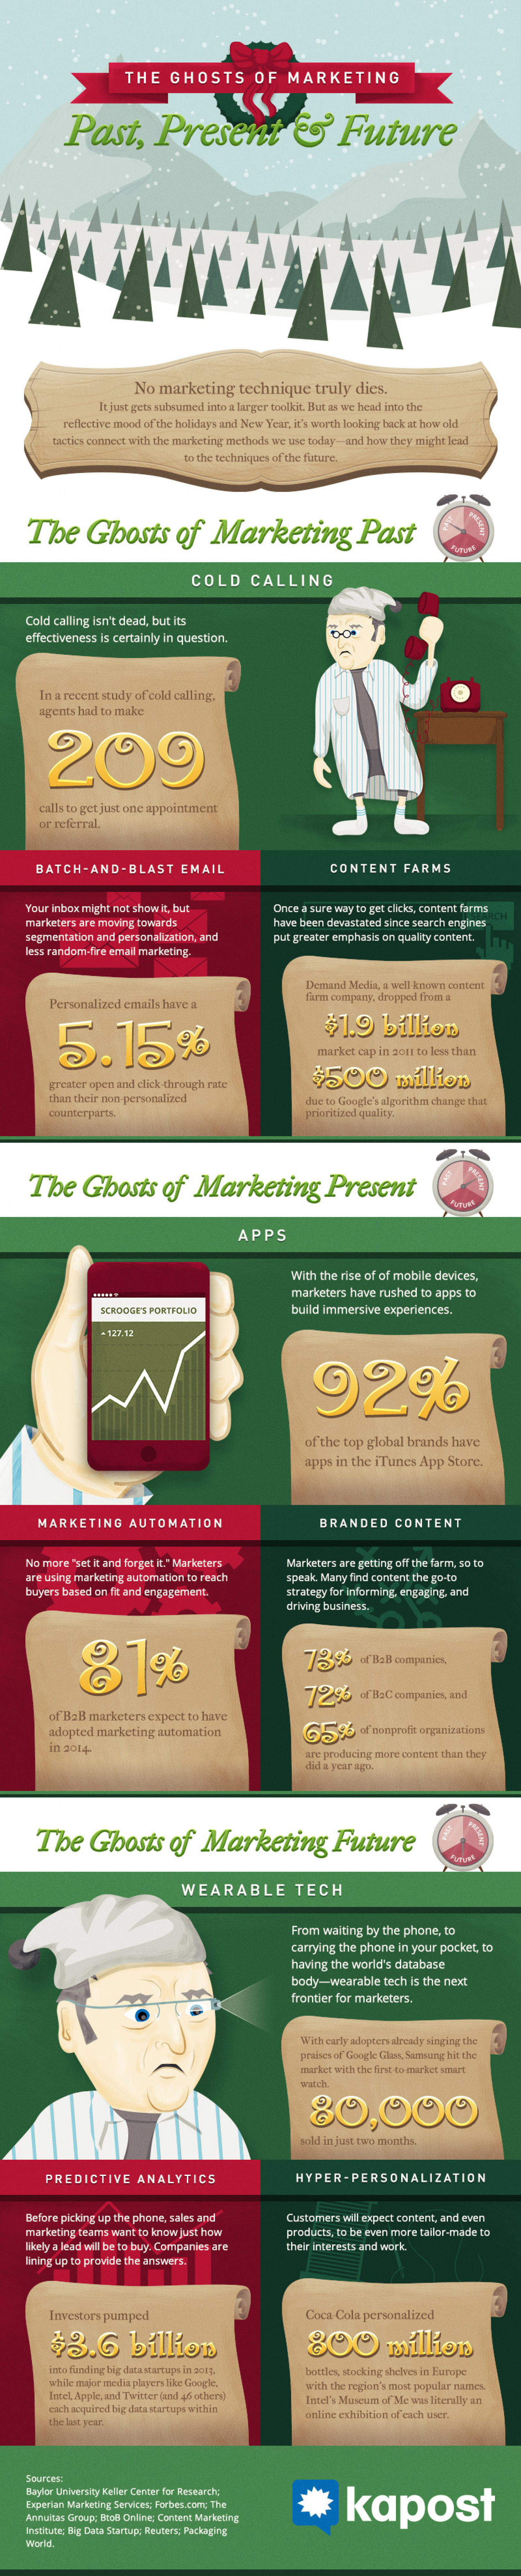 The Ghosts of Marketing Past, Present & Future Infographic